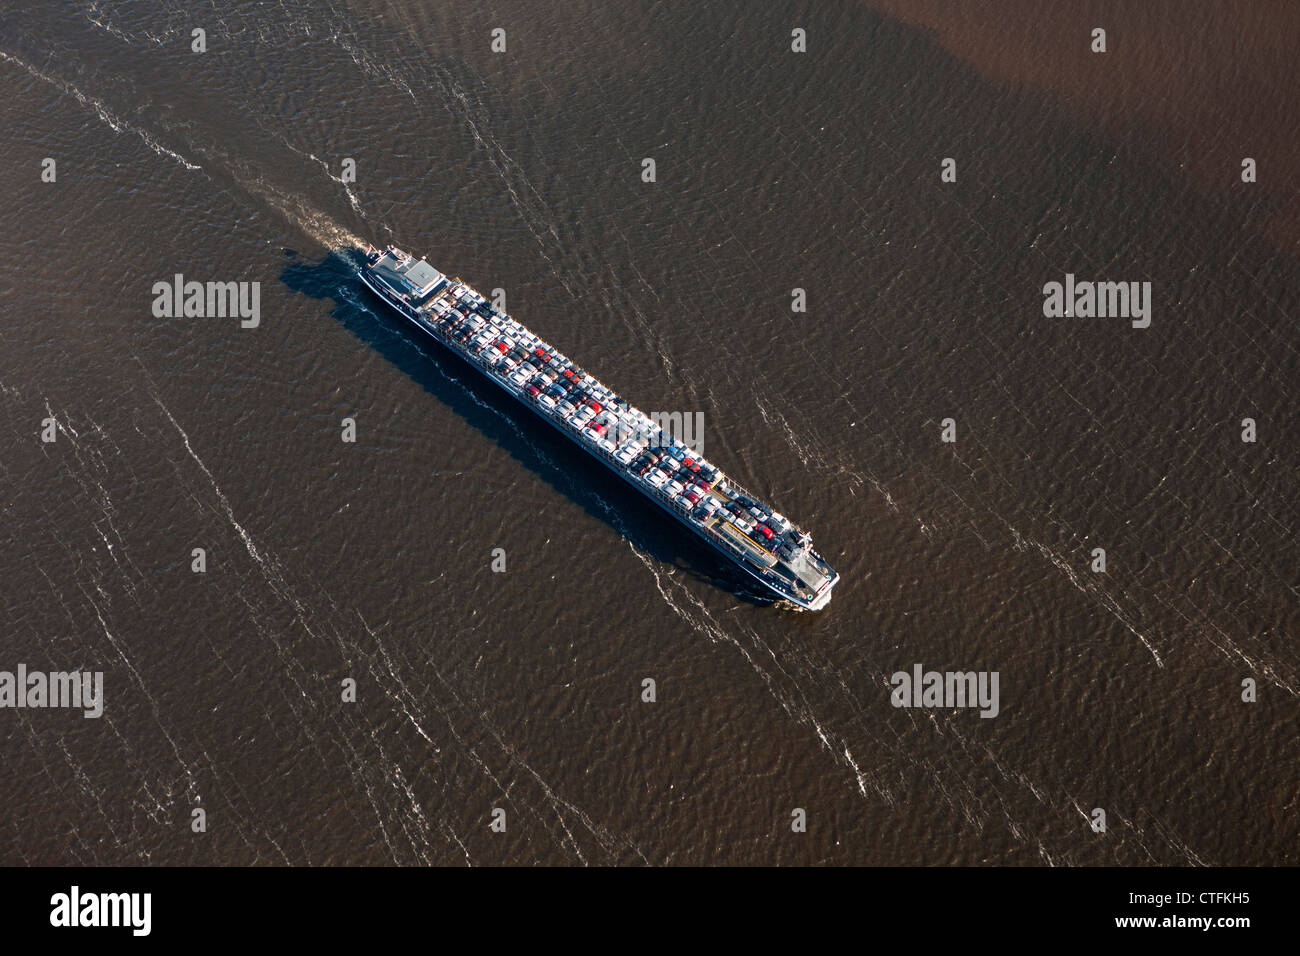 The Netherlands, Willemstad, River-vessel transporting cars. Aerial. - Stock Image